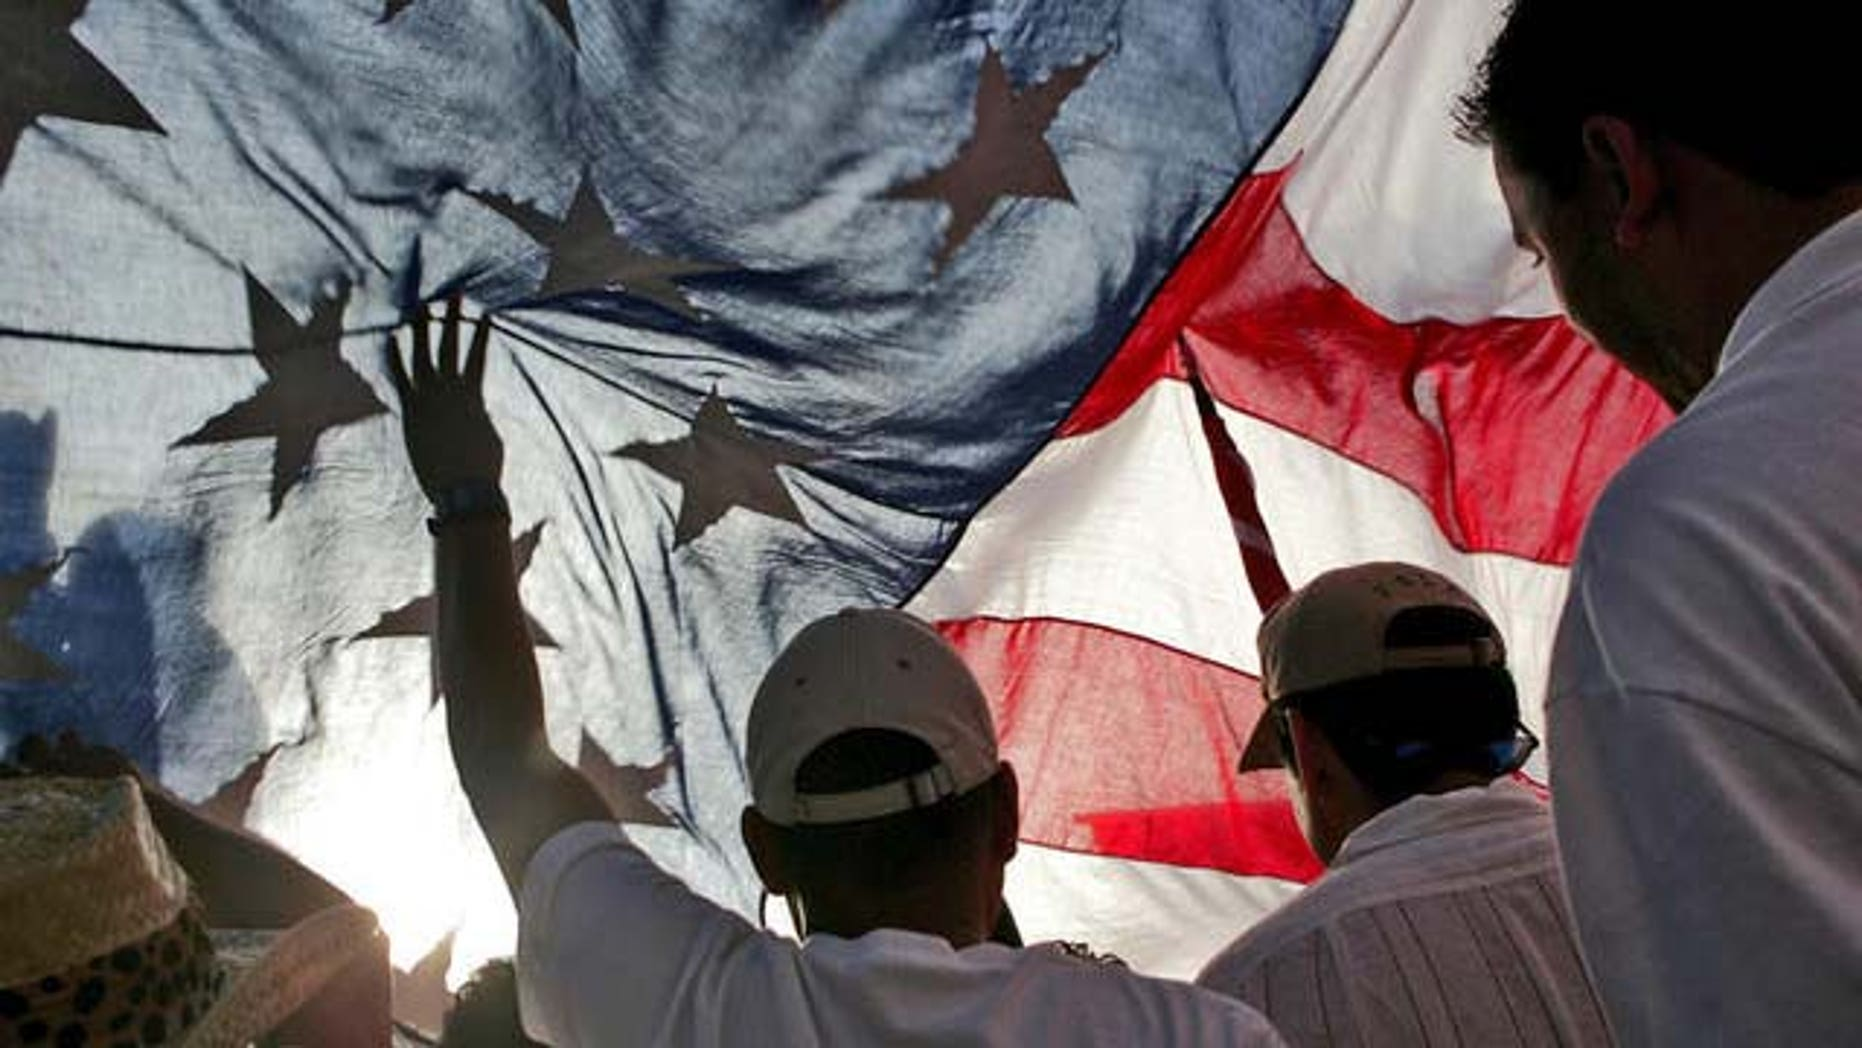 Immigration rights demonstrators hold a U.S. flag aloft during a march along Wilshire Boulevard, Monday, May 1, 2006, in Los Angeles. (AP Photo/Stefano Paltera)